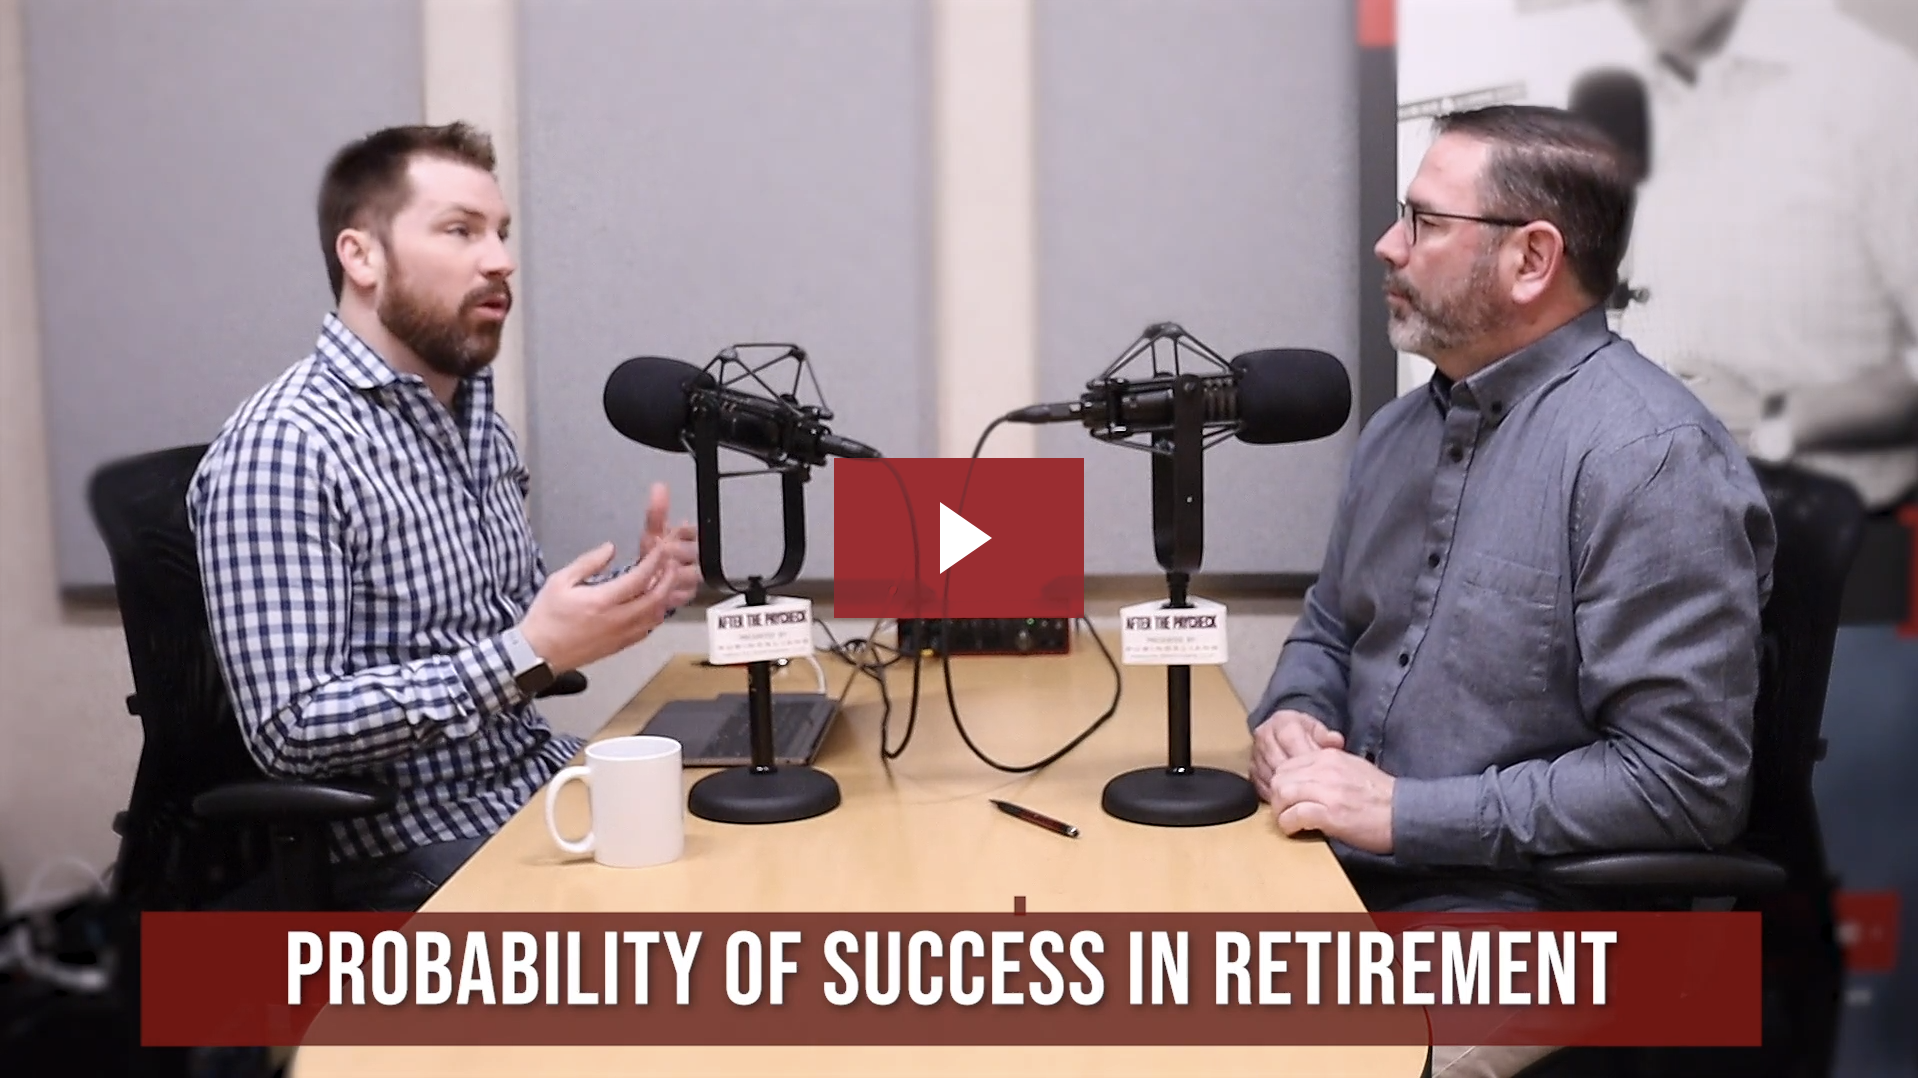 Calculating Probability Of Success In Retirement